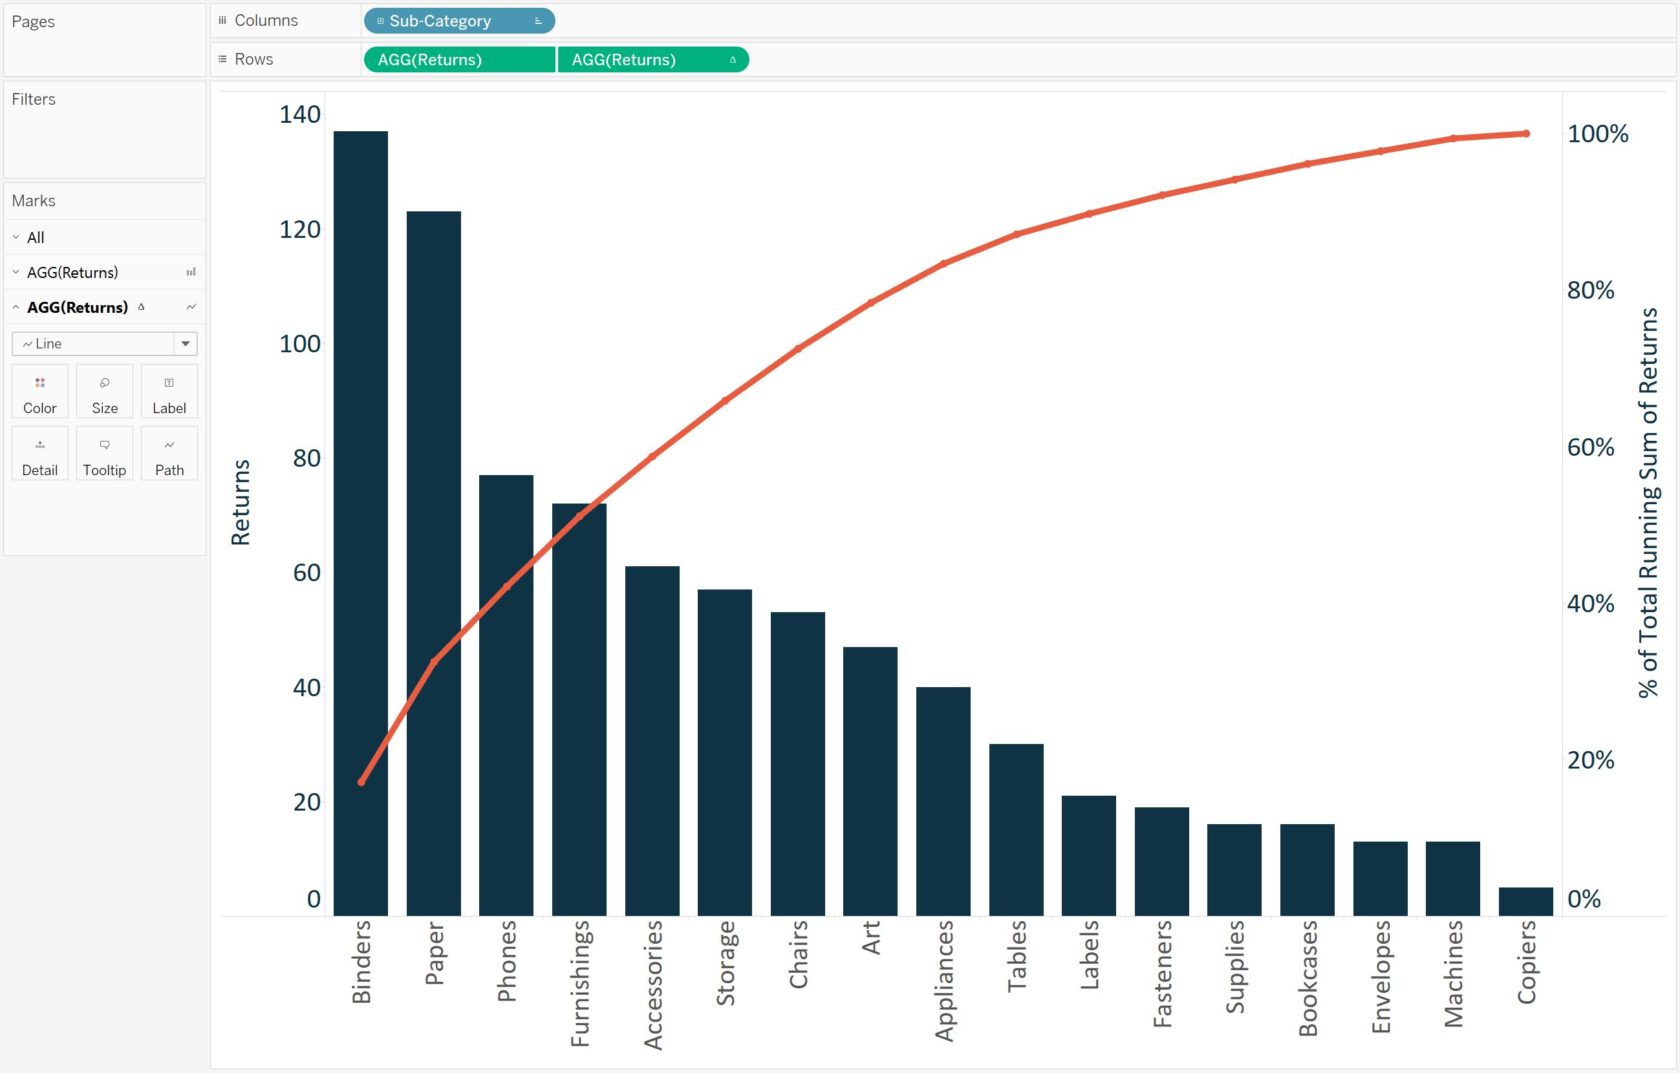 Tableau Returns by Product Sub-Category Pareto Chart